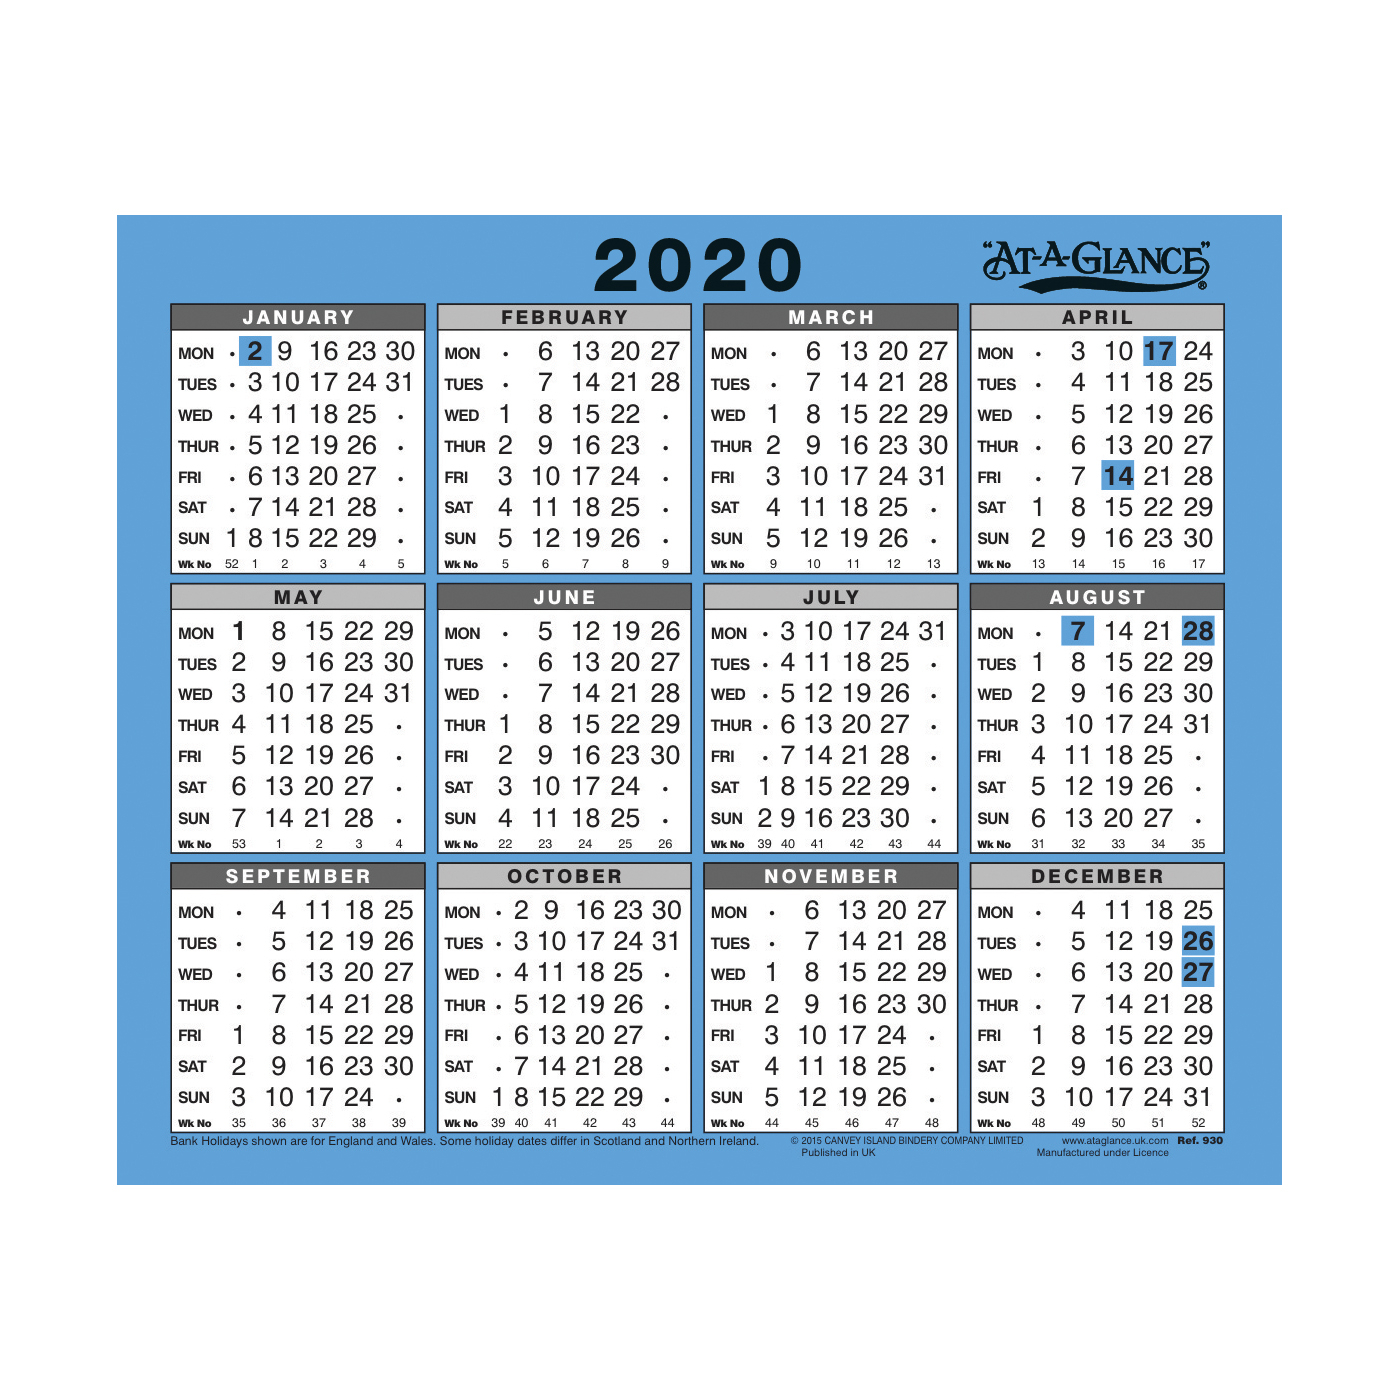 At-A-Glance 2020 Wall/desk Calendar Year To View Gloss Board Binding  254X210Mm White/blue Ref 930 2020 inside Year At A Glance 2020